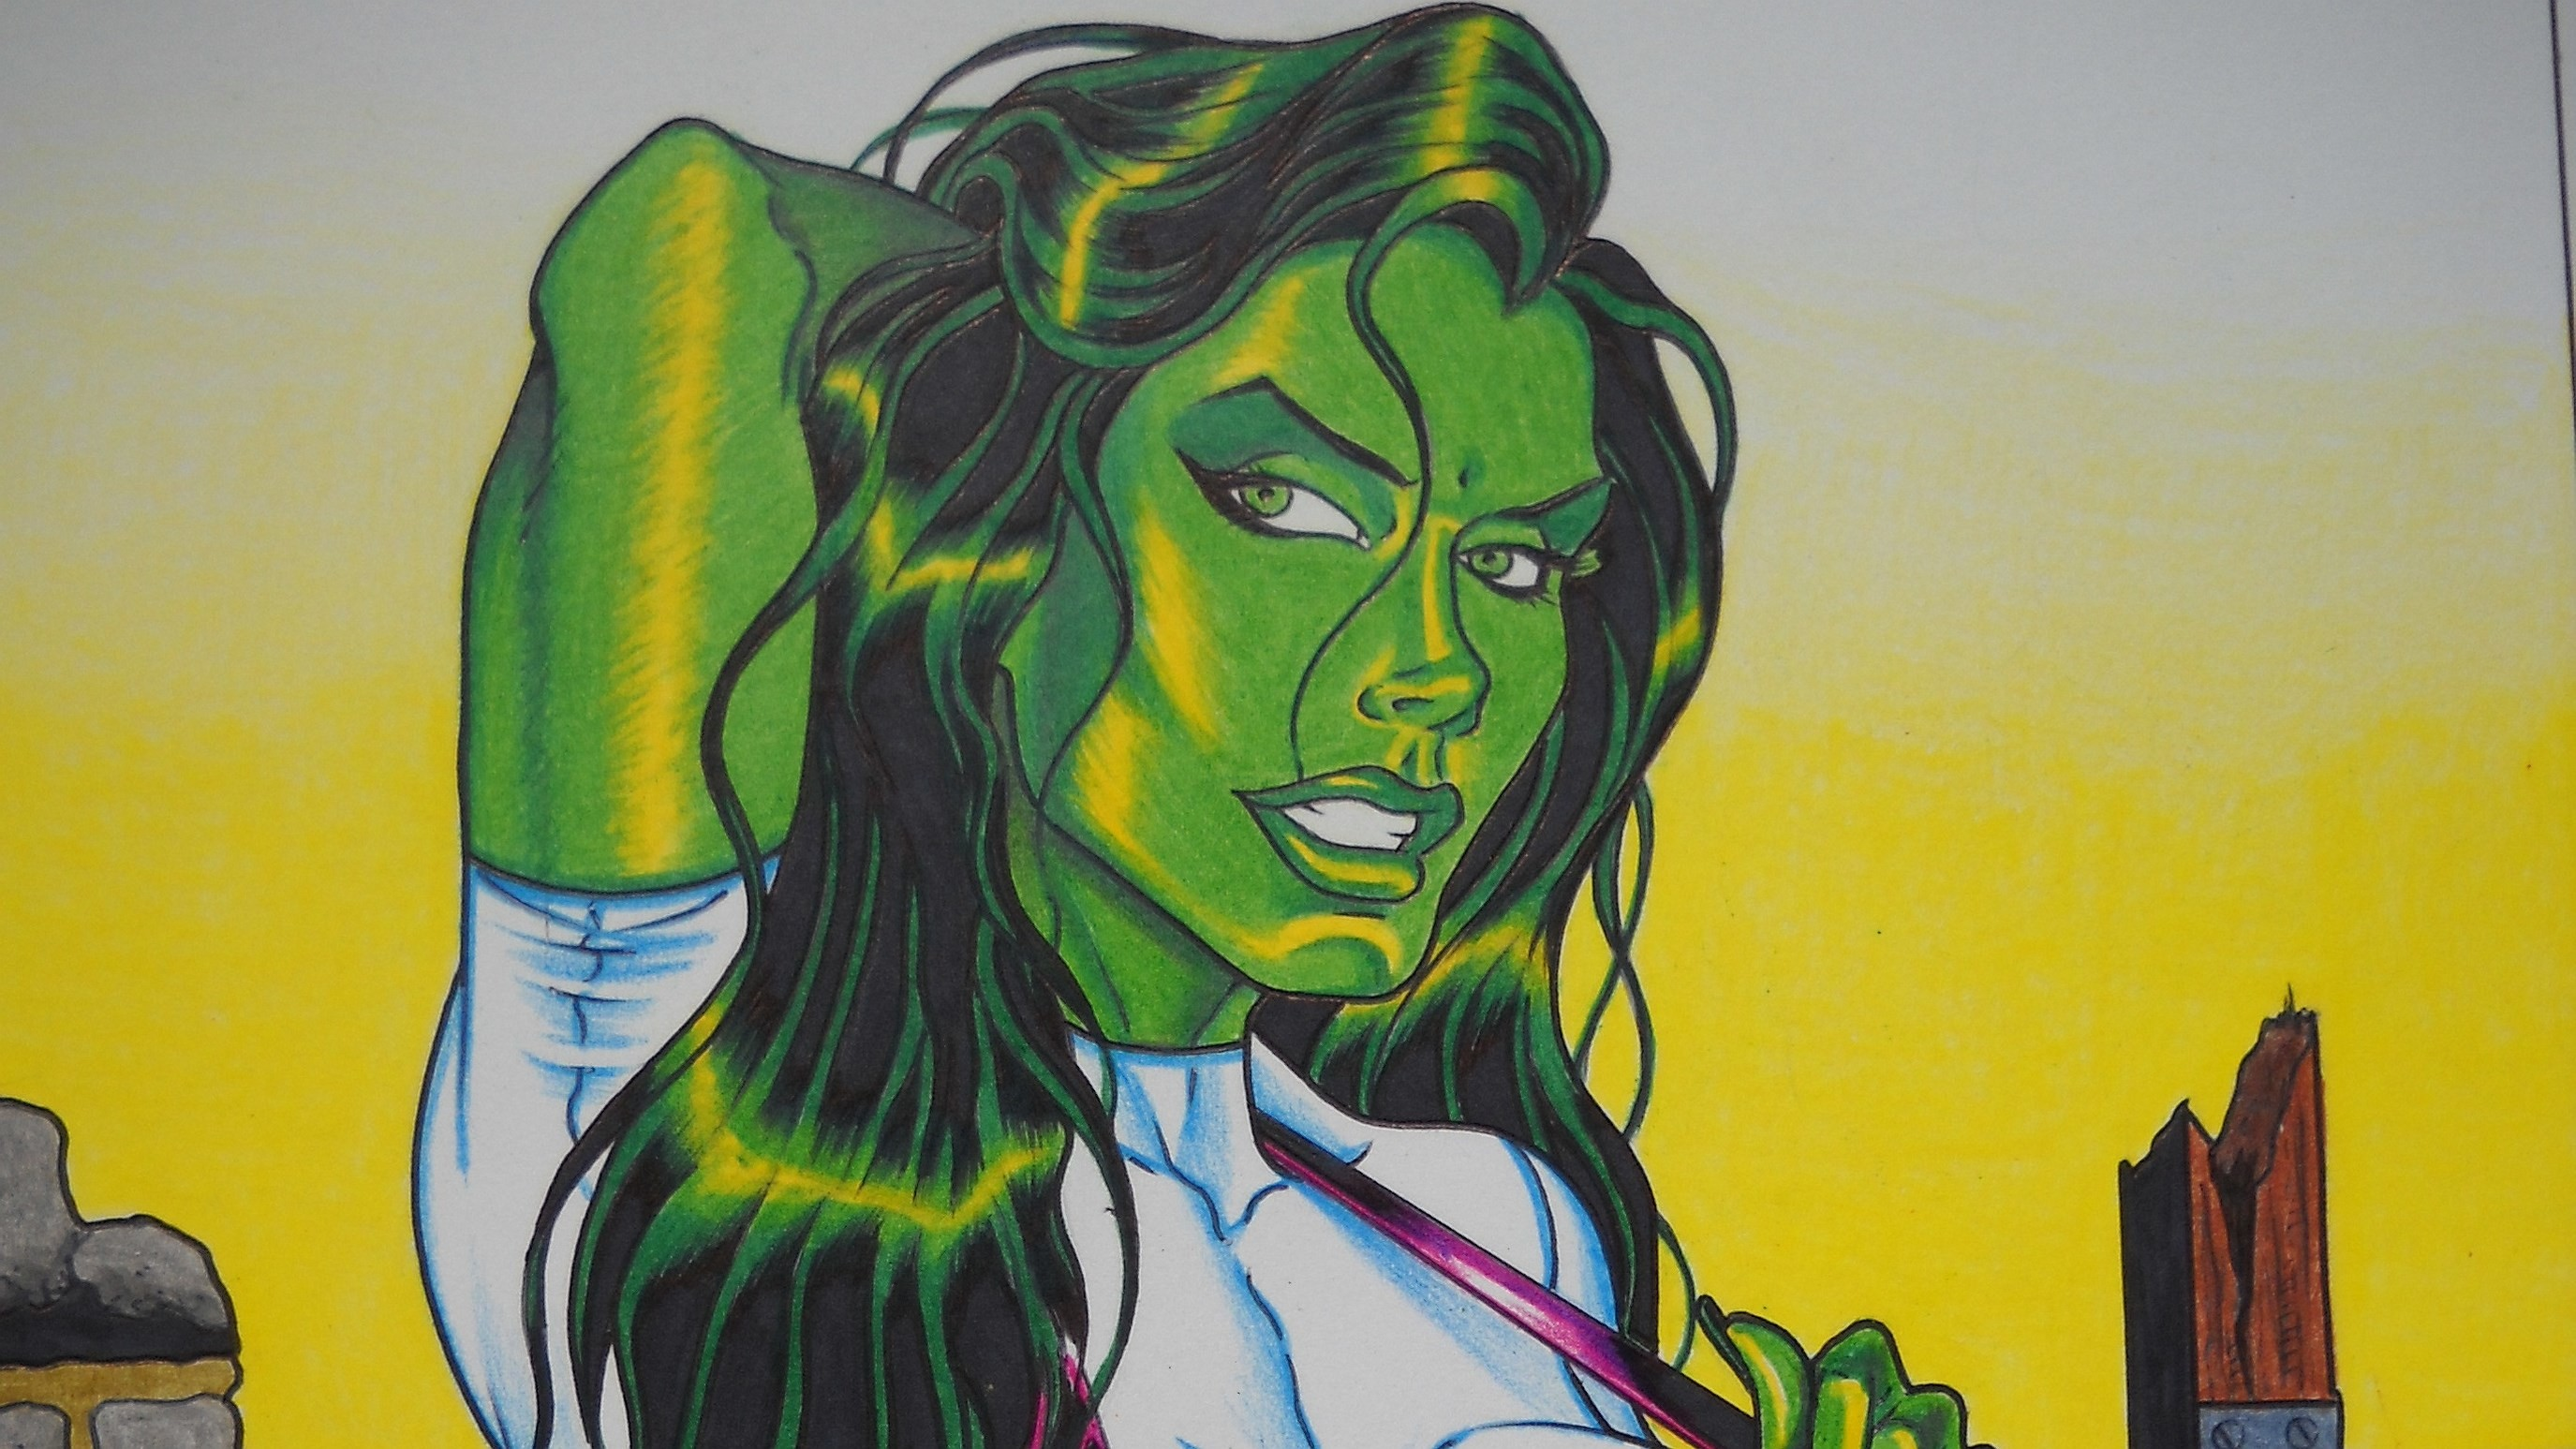 she hulk wallpaper pictures free by Blake Chester (2017-03-18)